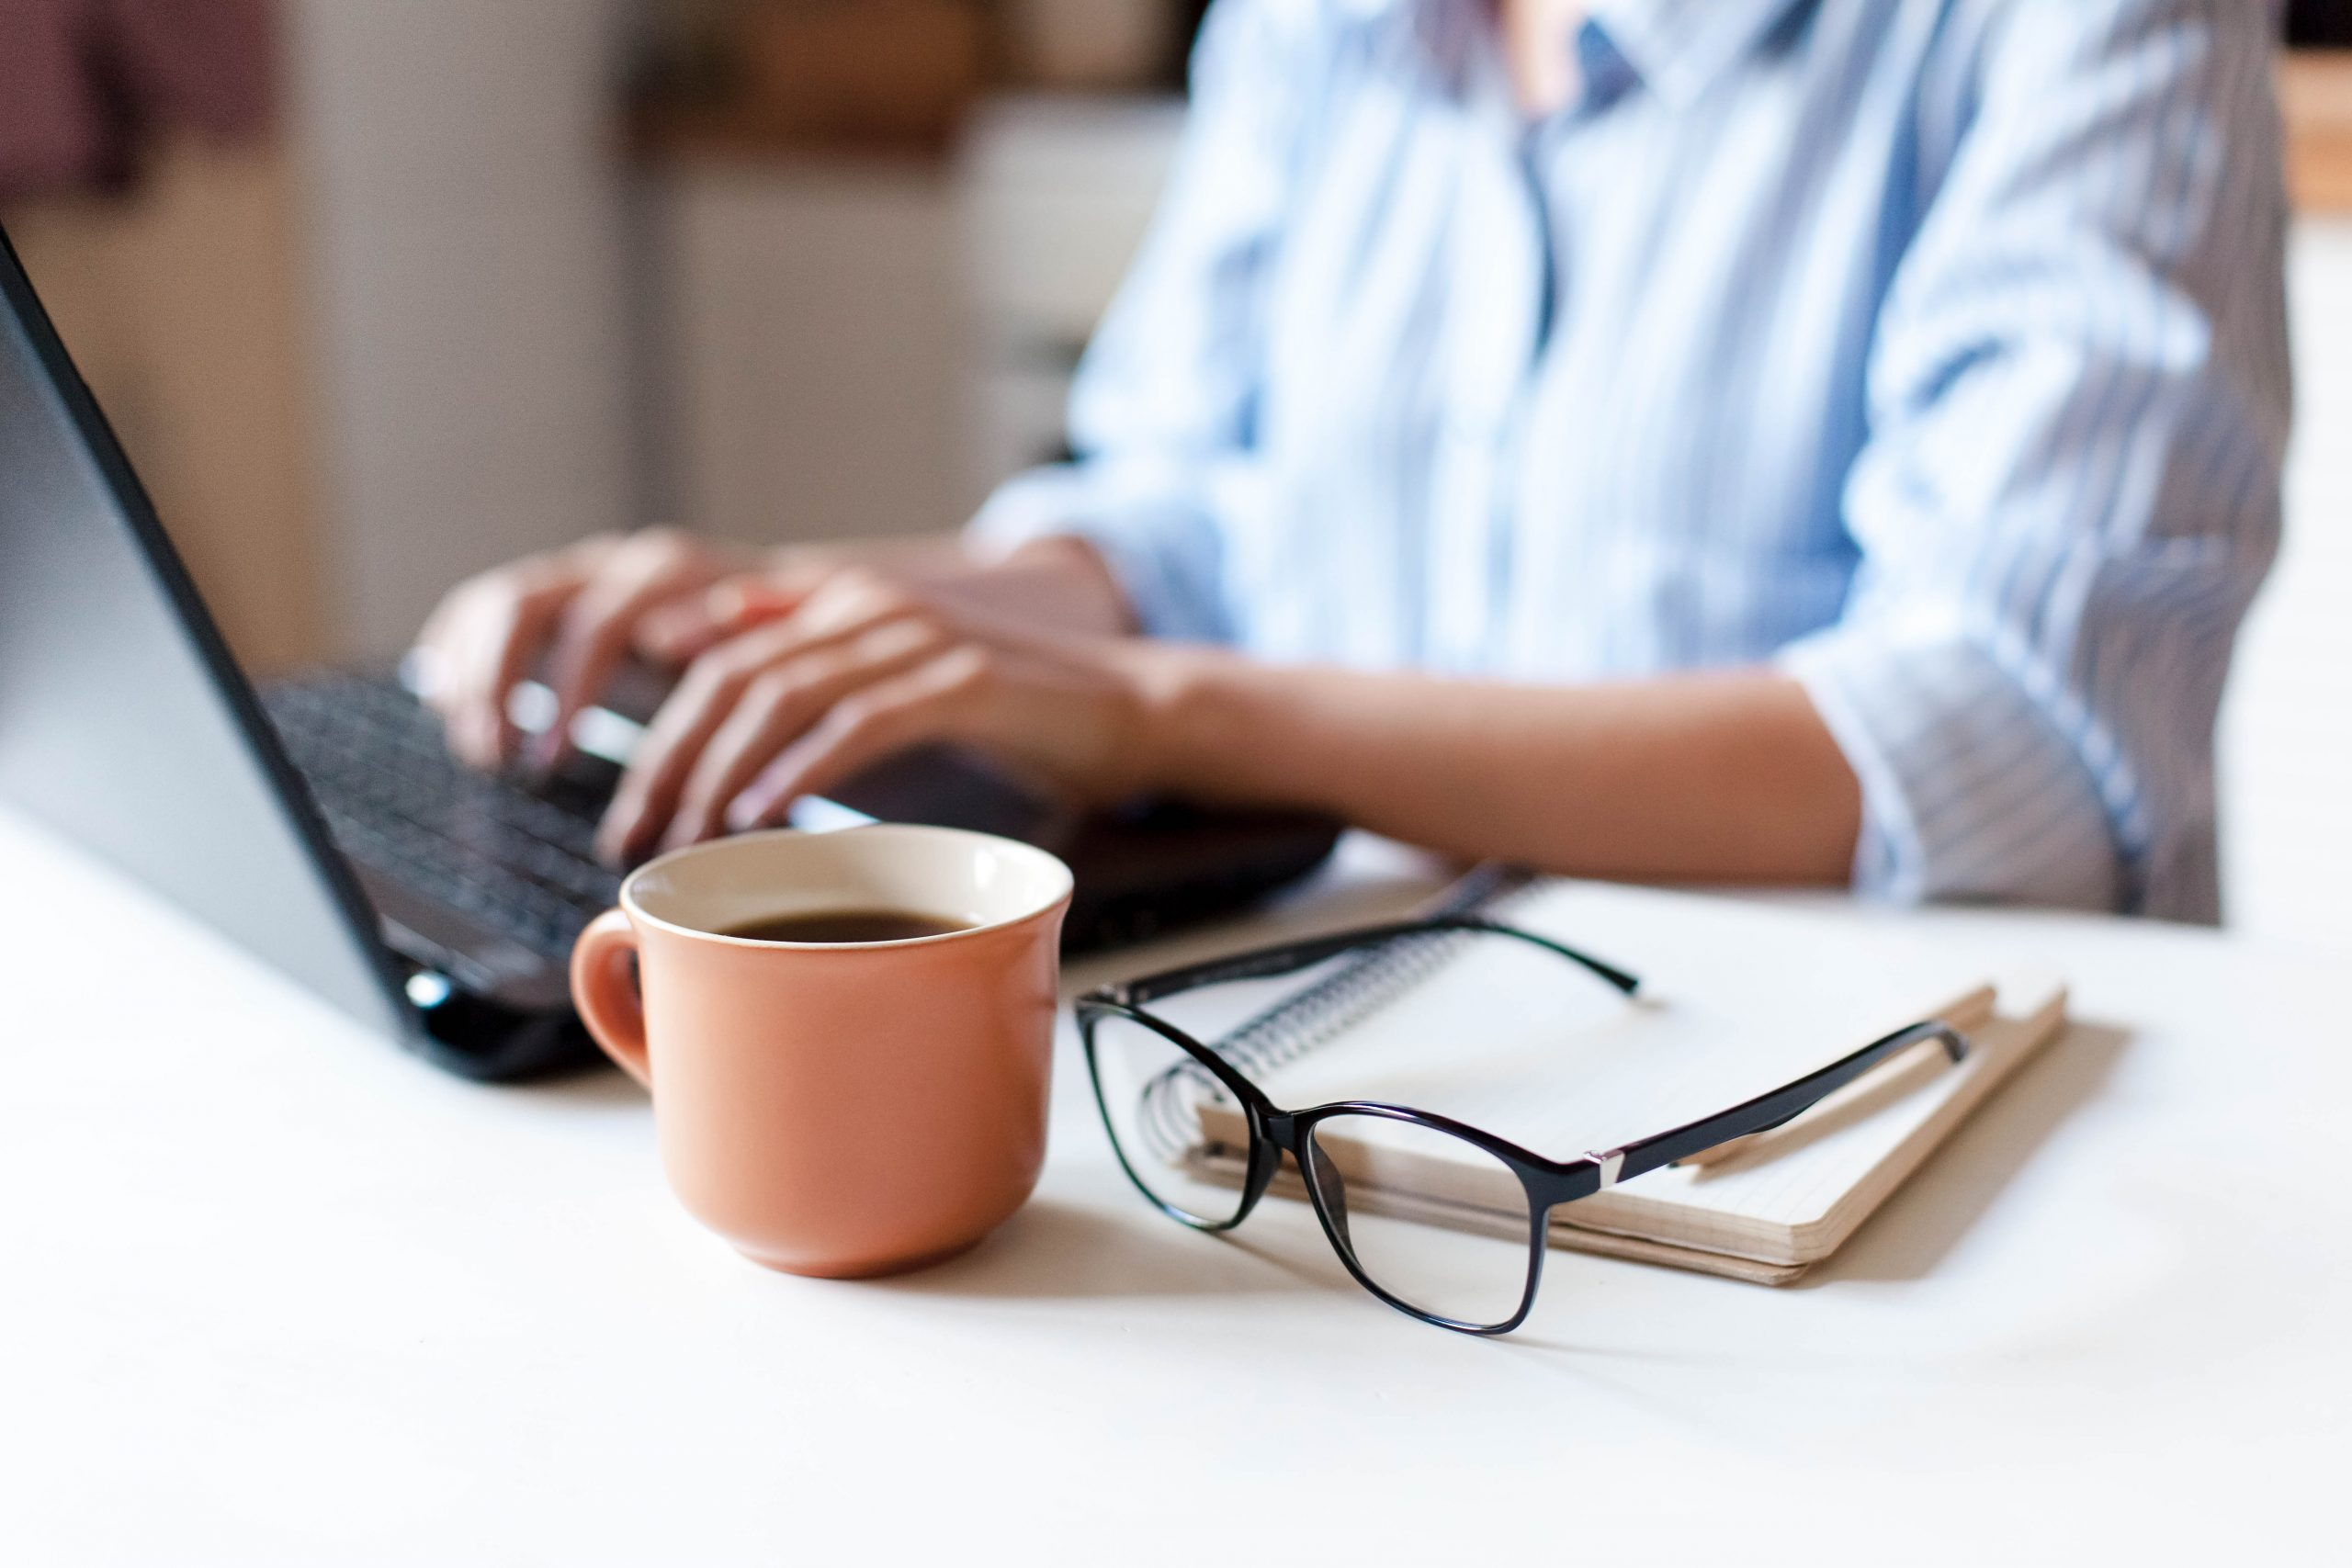 Person sitting at desk typing on a laptop. Coffee, glasses and notepad next to laptop.